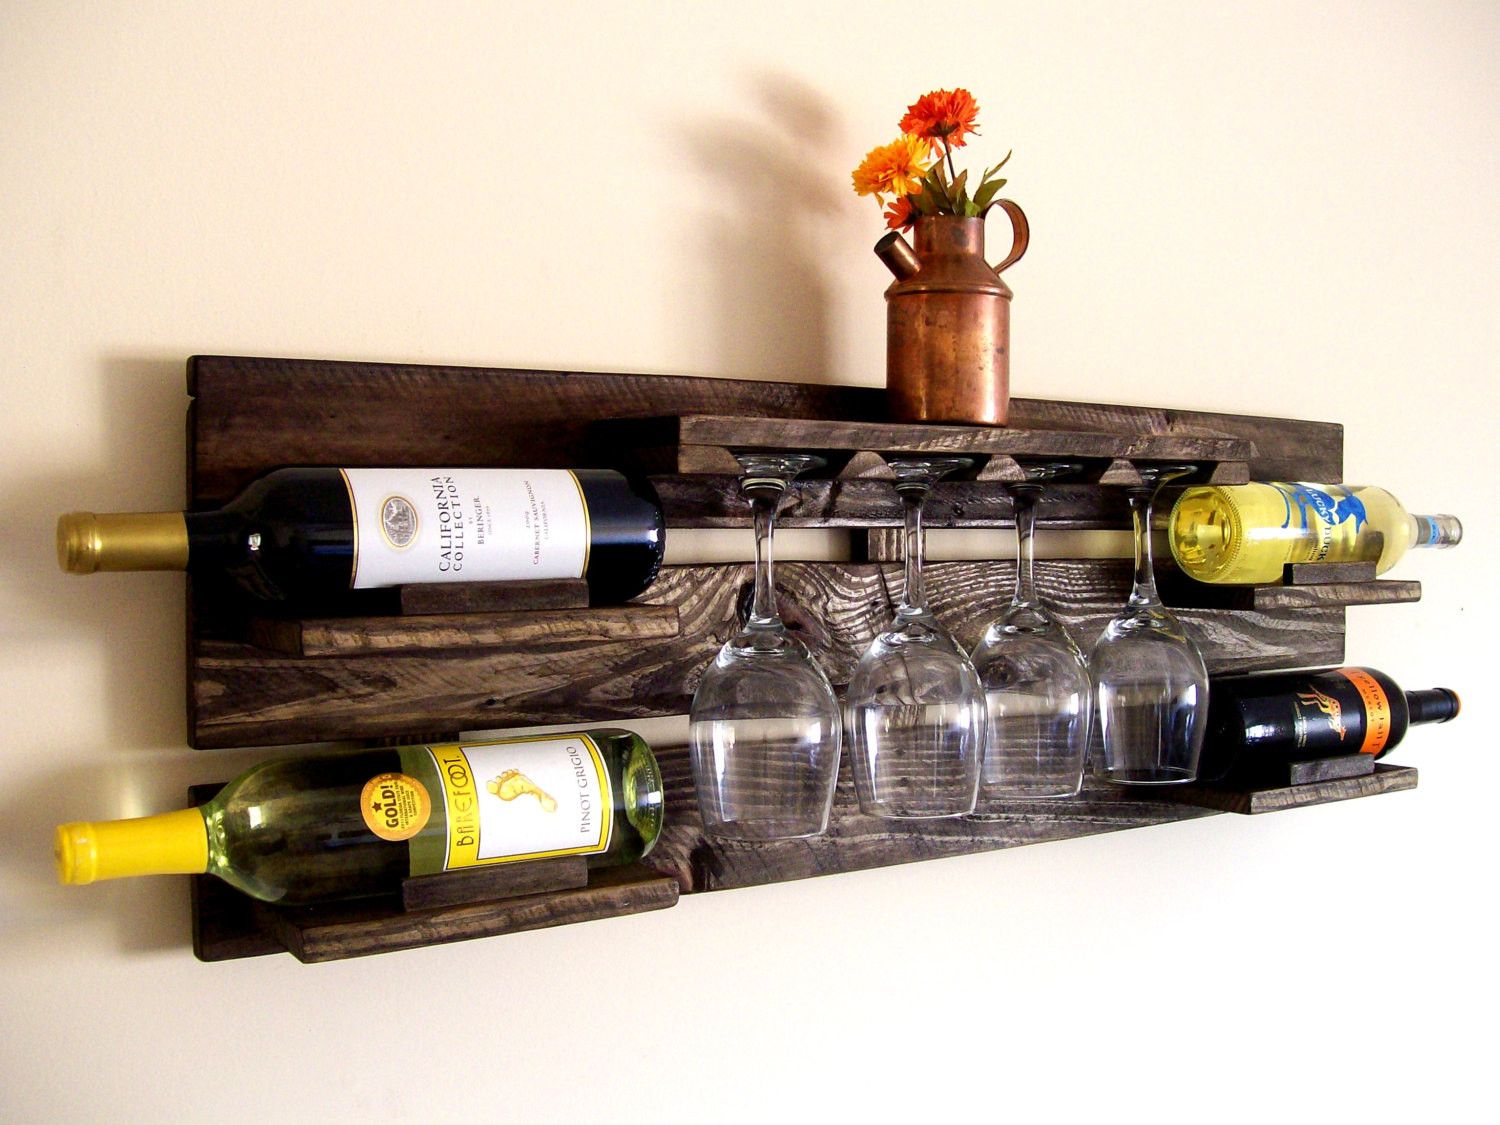 Best ideas about Pallet Wine Rack DIY . Save or Pin Clever Ways Adding Wine Glass Racks To Your Home s Décor Now.